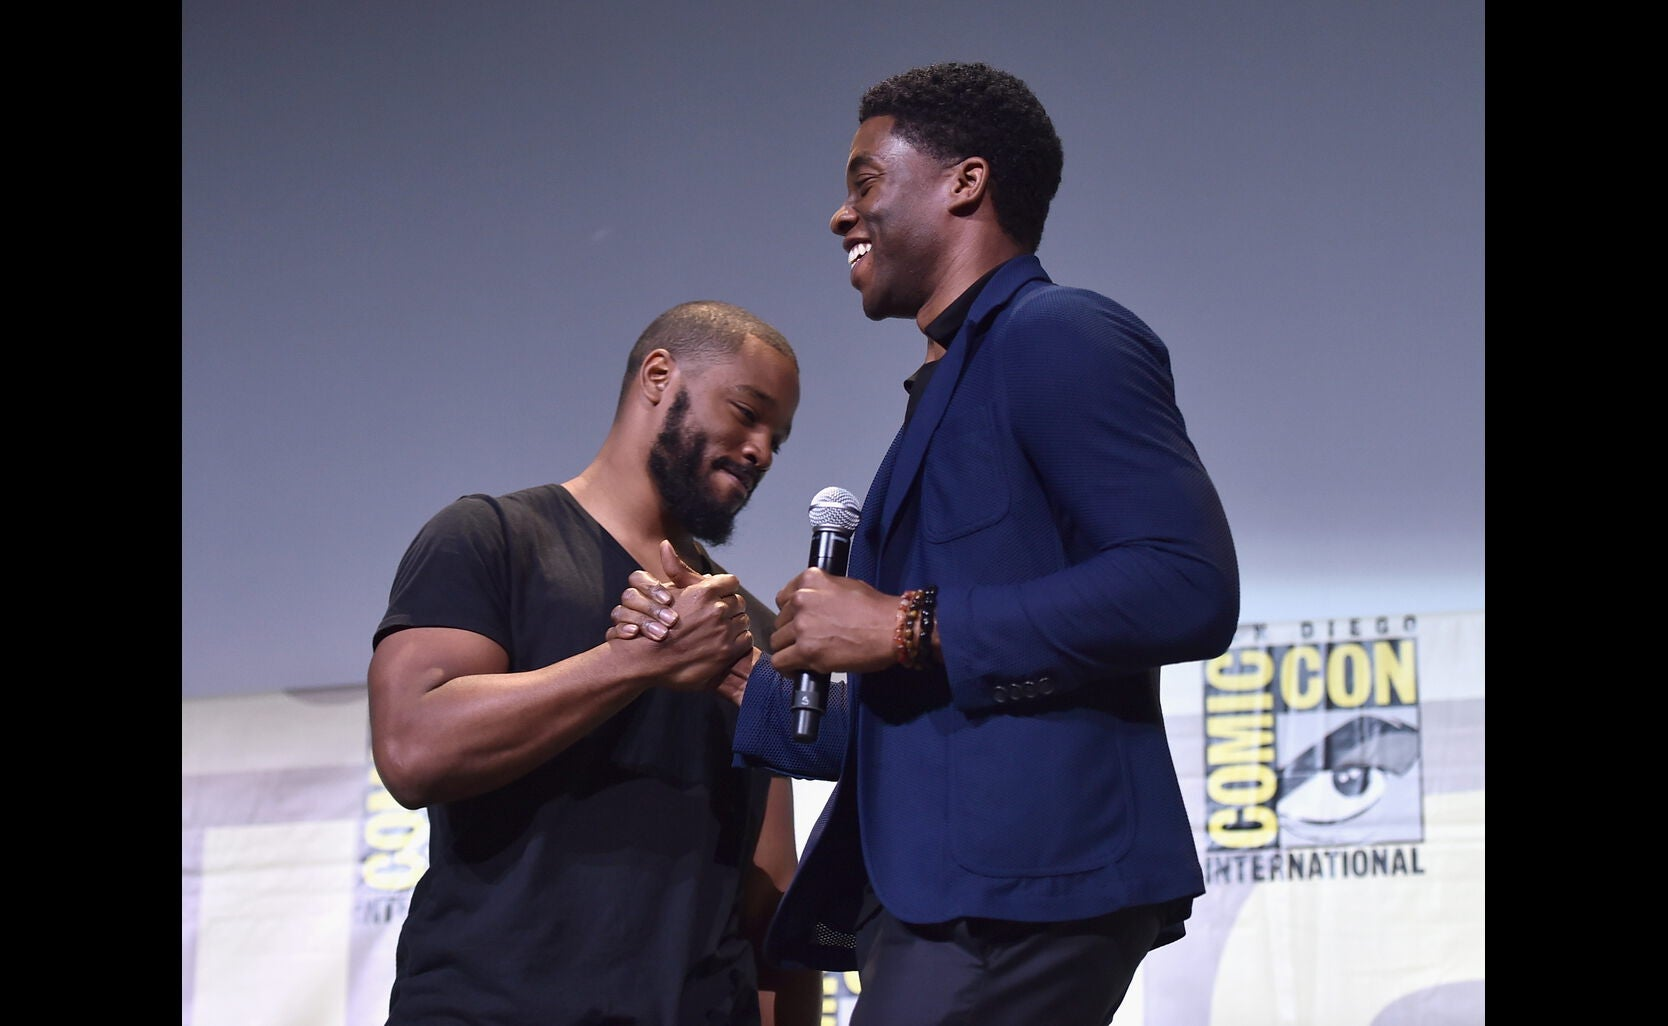 Director Ryan Coogler and actor Chadwick Boseman at the Marvel Studios presentation at Comic-Con 2016